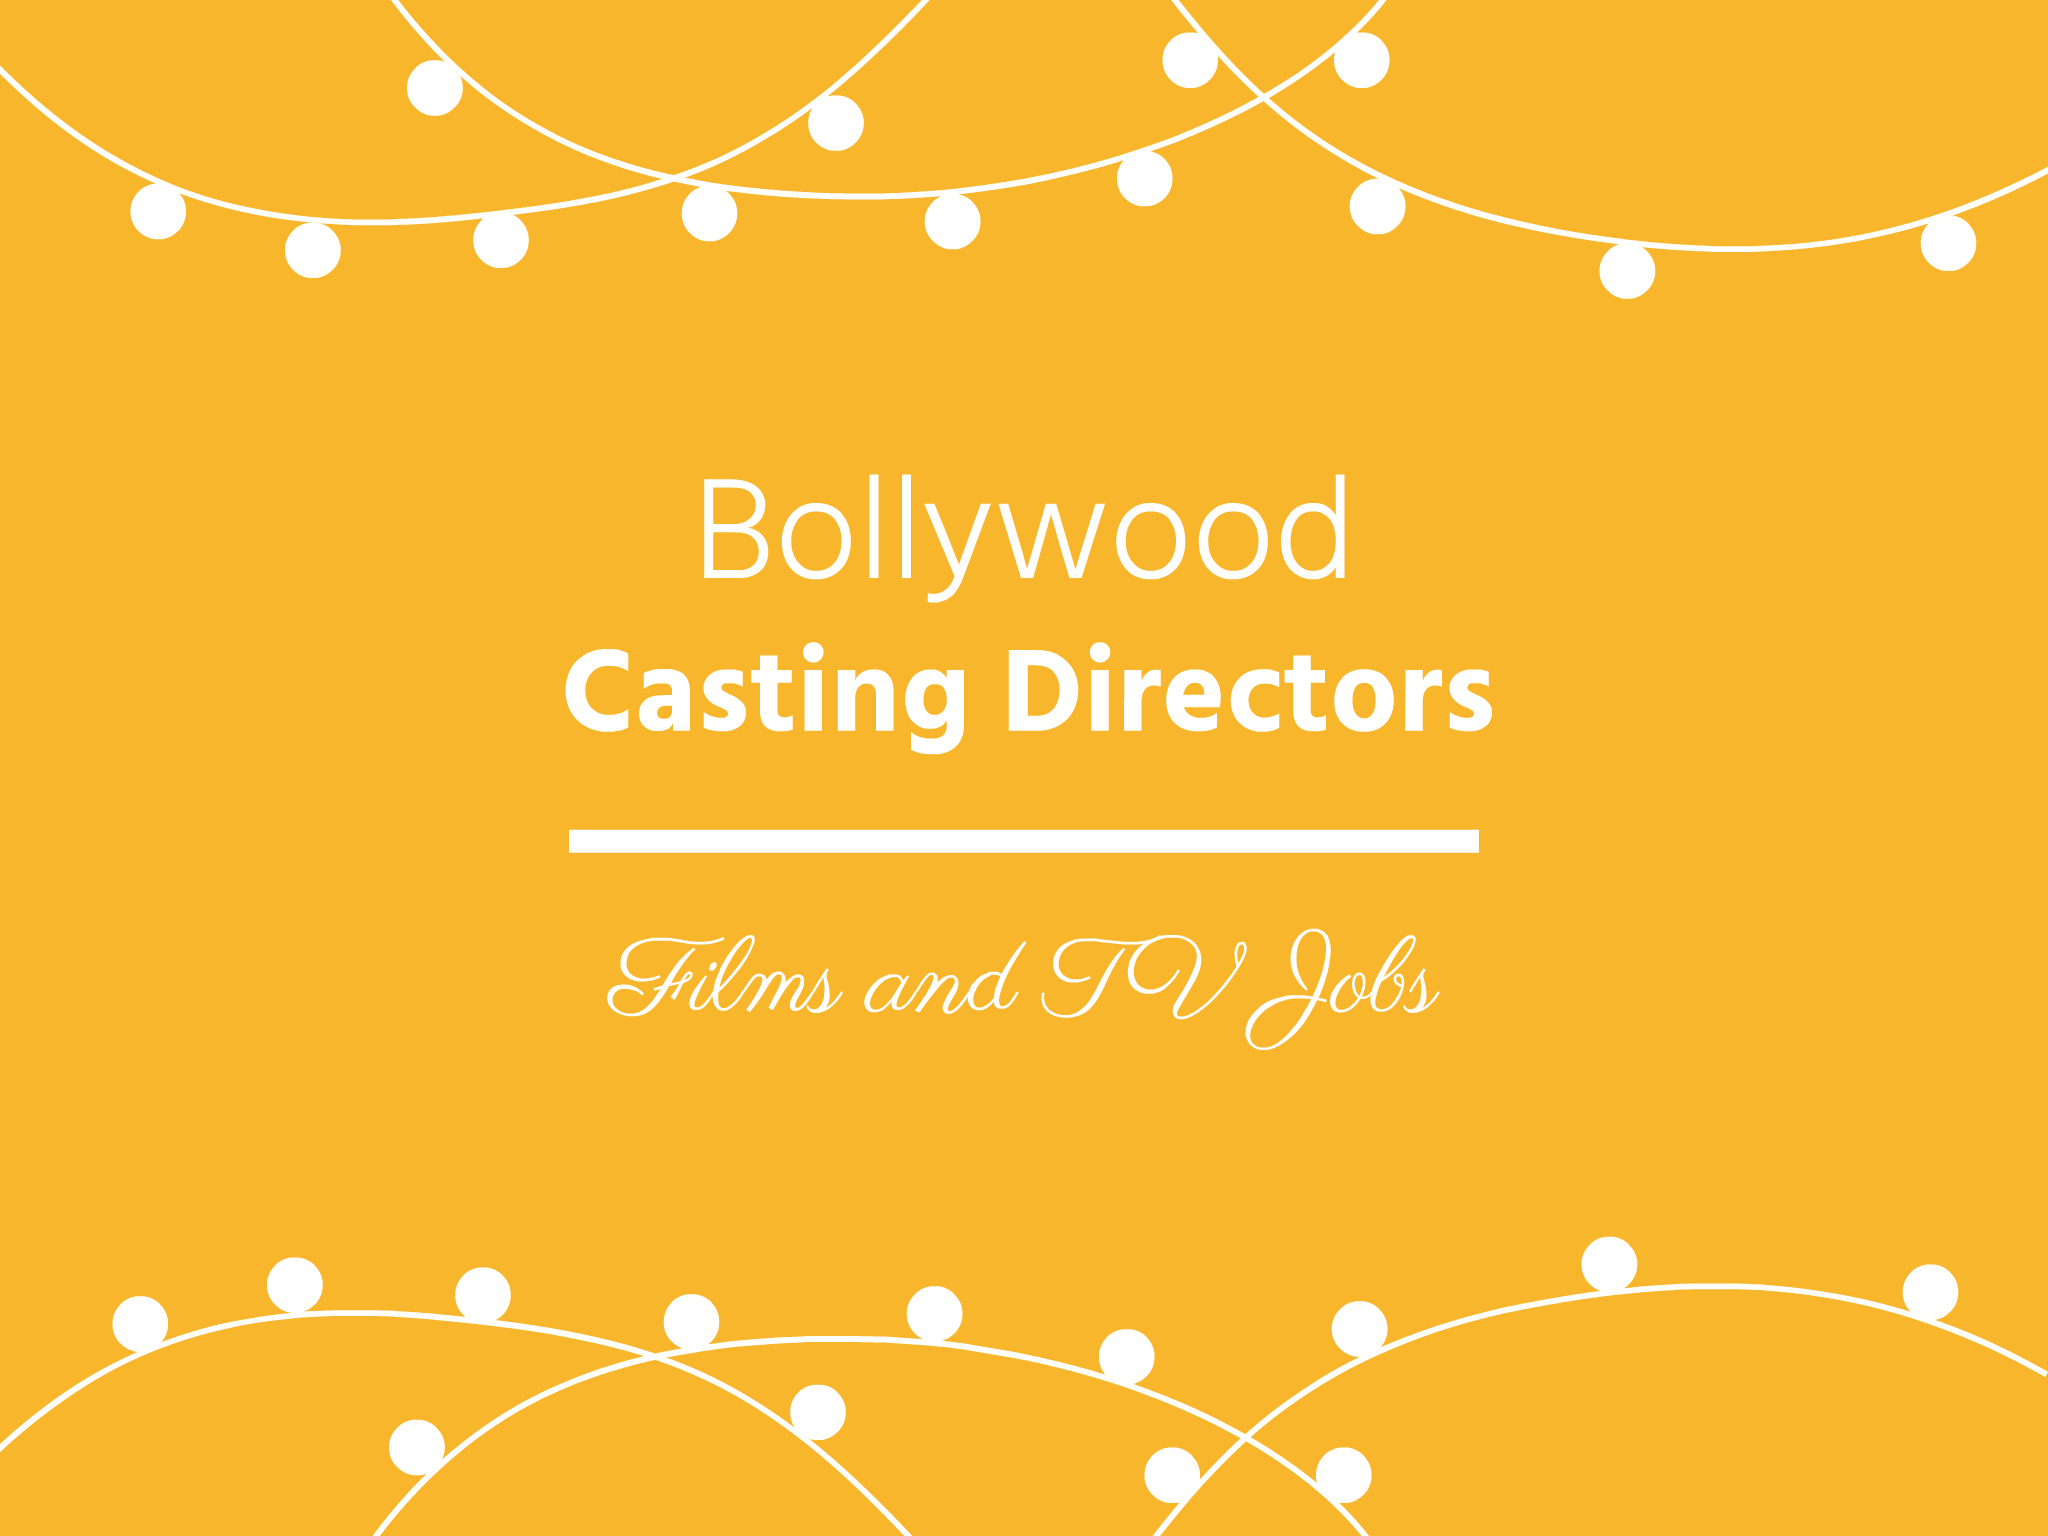 Famous Casting Directors In Bollywood Can Make Your Career Invincible